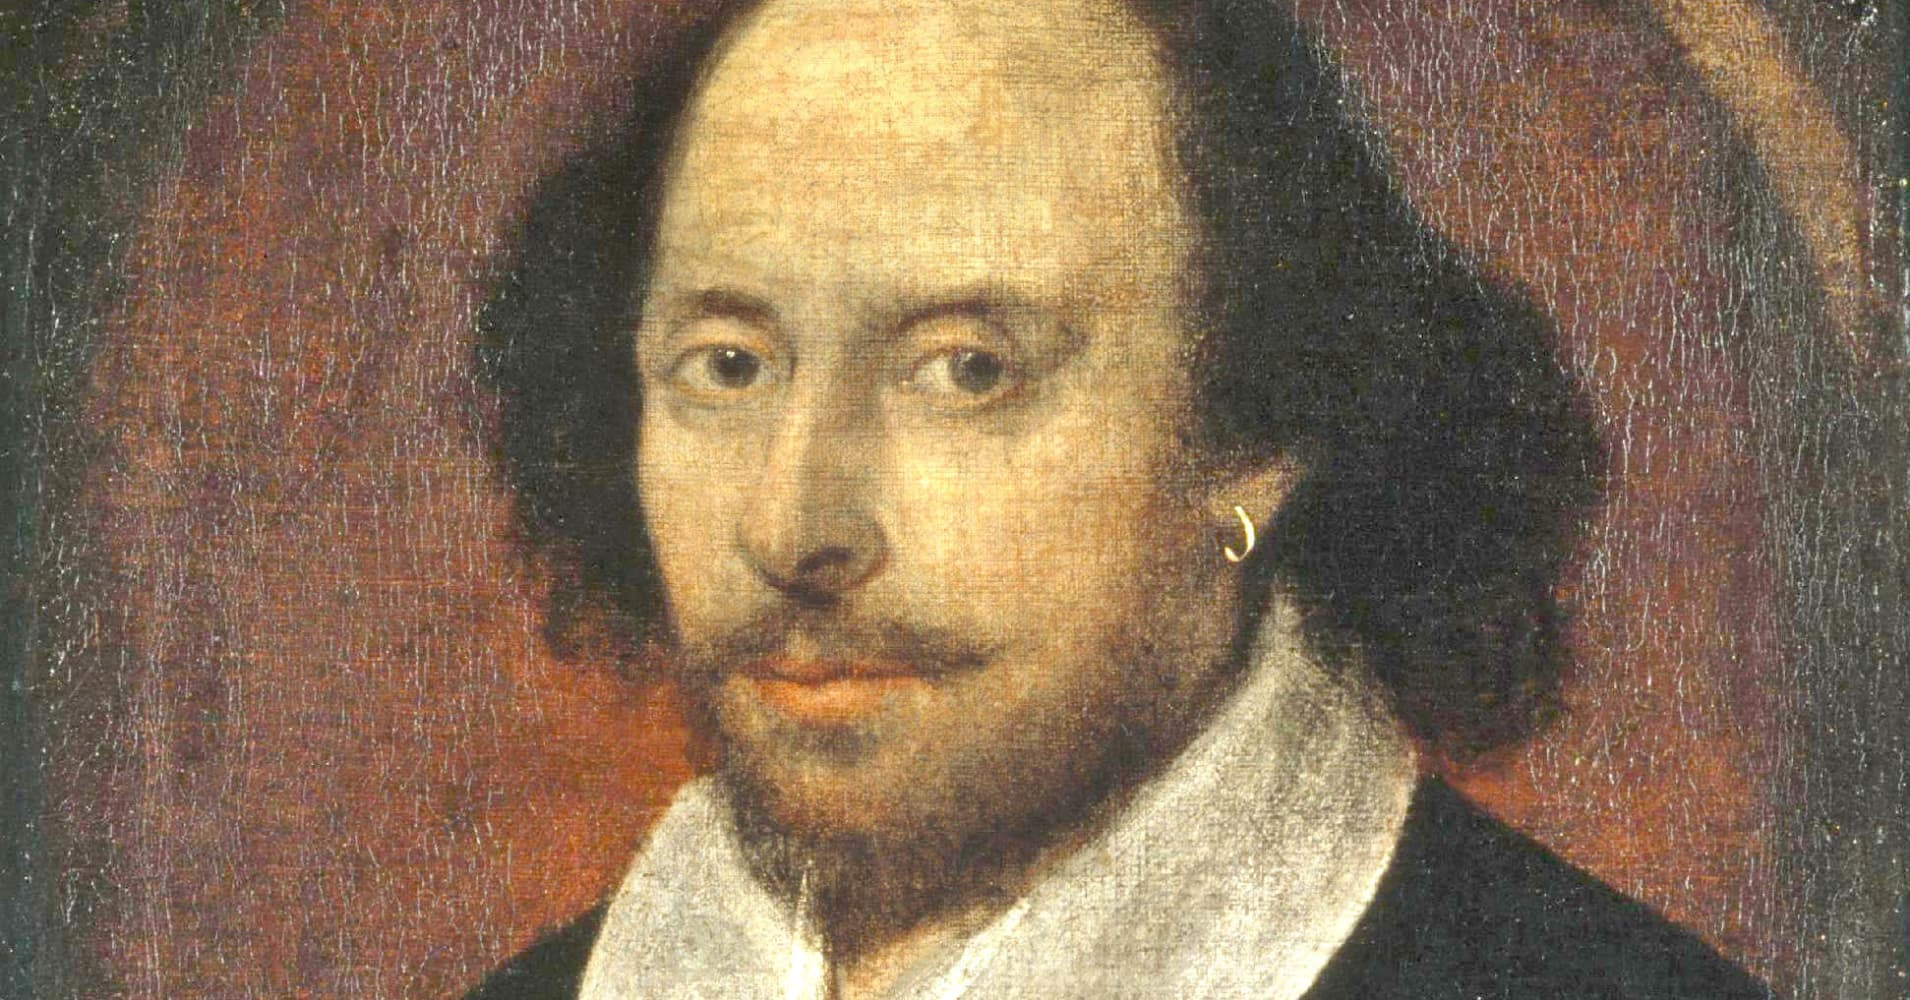 essays on william shakespeares life Free essay: william shakespeare was born on april 23rd 1564 in stratford-upon-avon and died on april 23rd 1616 he was 52 years old when he died and was.